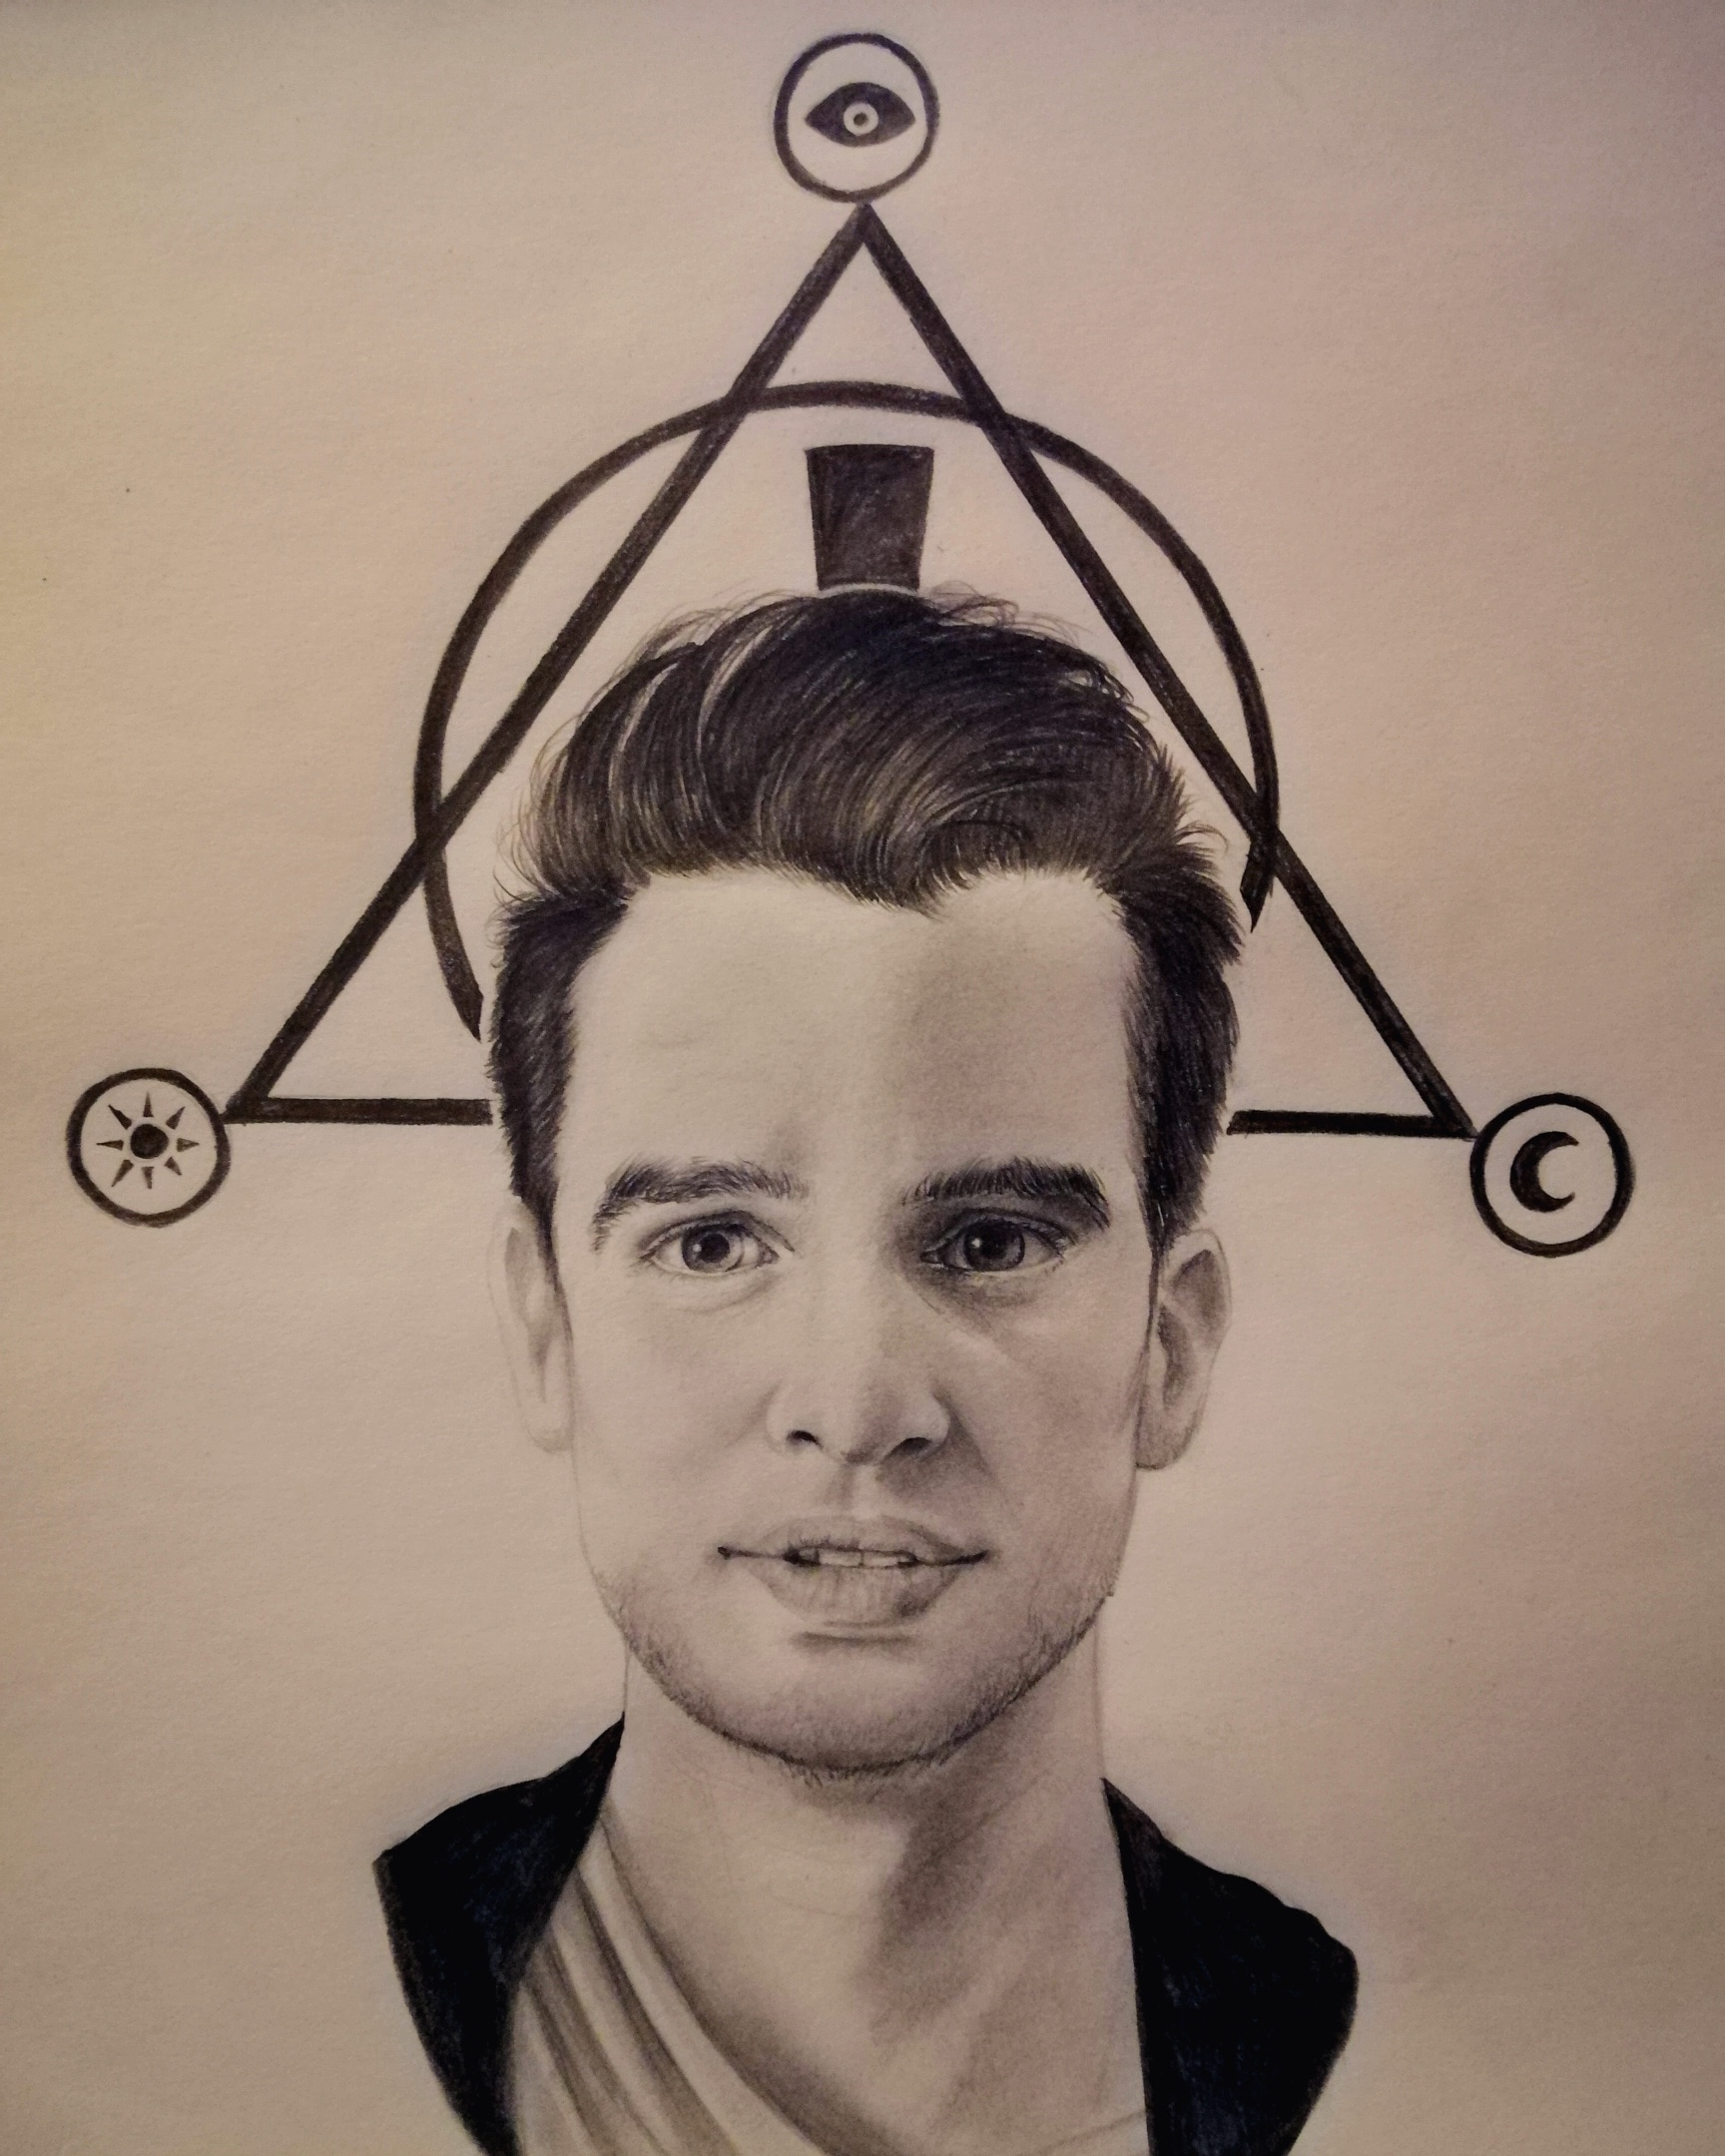 Brendon Urie Drawing : brendon, drawing, Portrait, Brendon, (Panic!, Disco),, Hours, Drawing